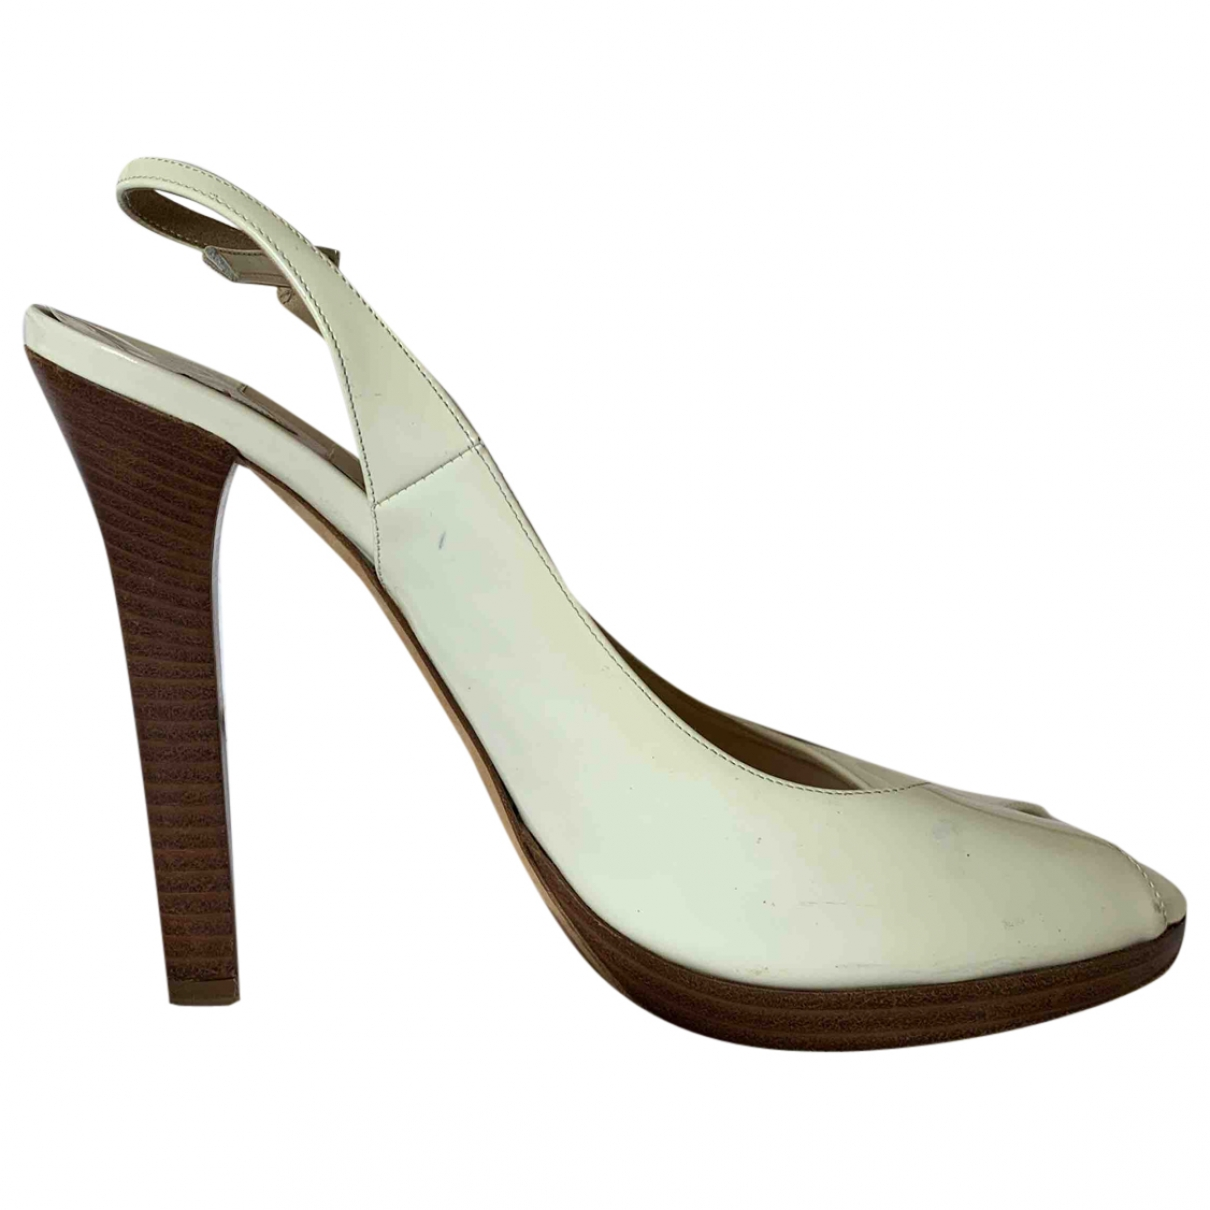 Jimmy Choo Esme White Patent leather Heels for Women 40 EU